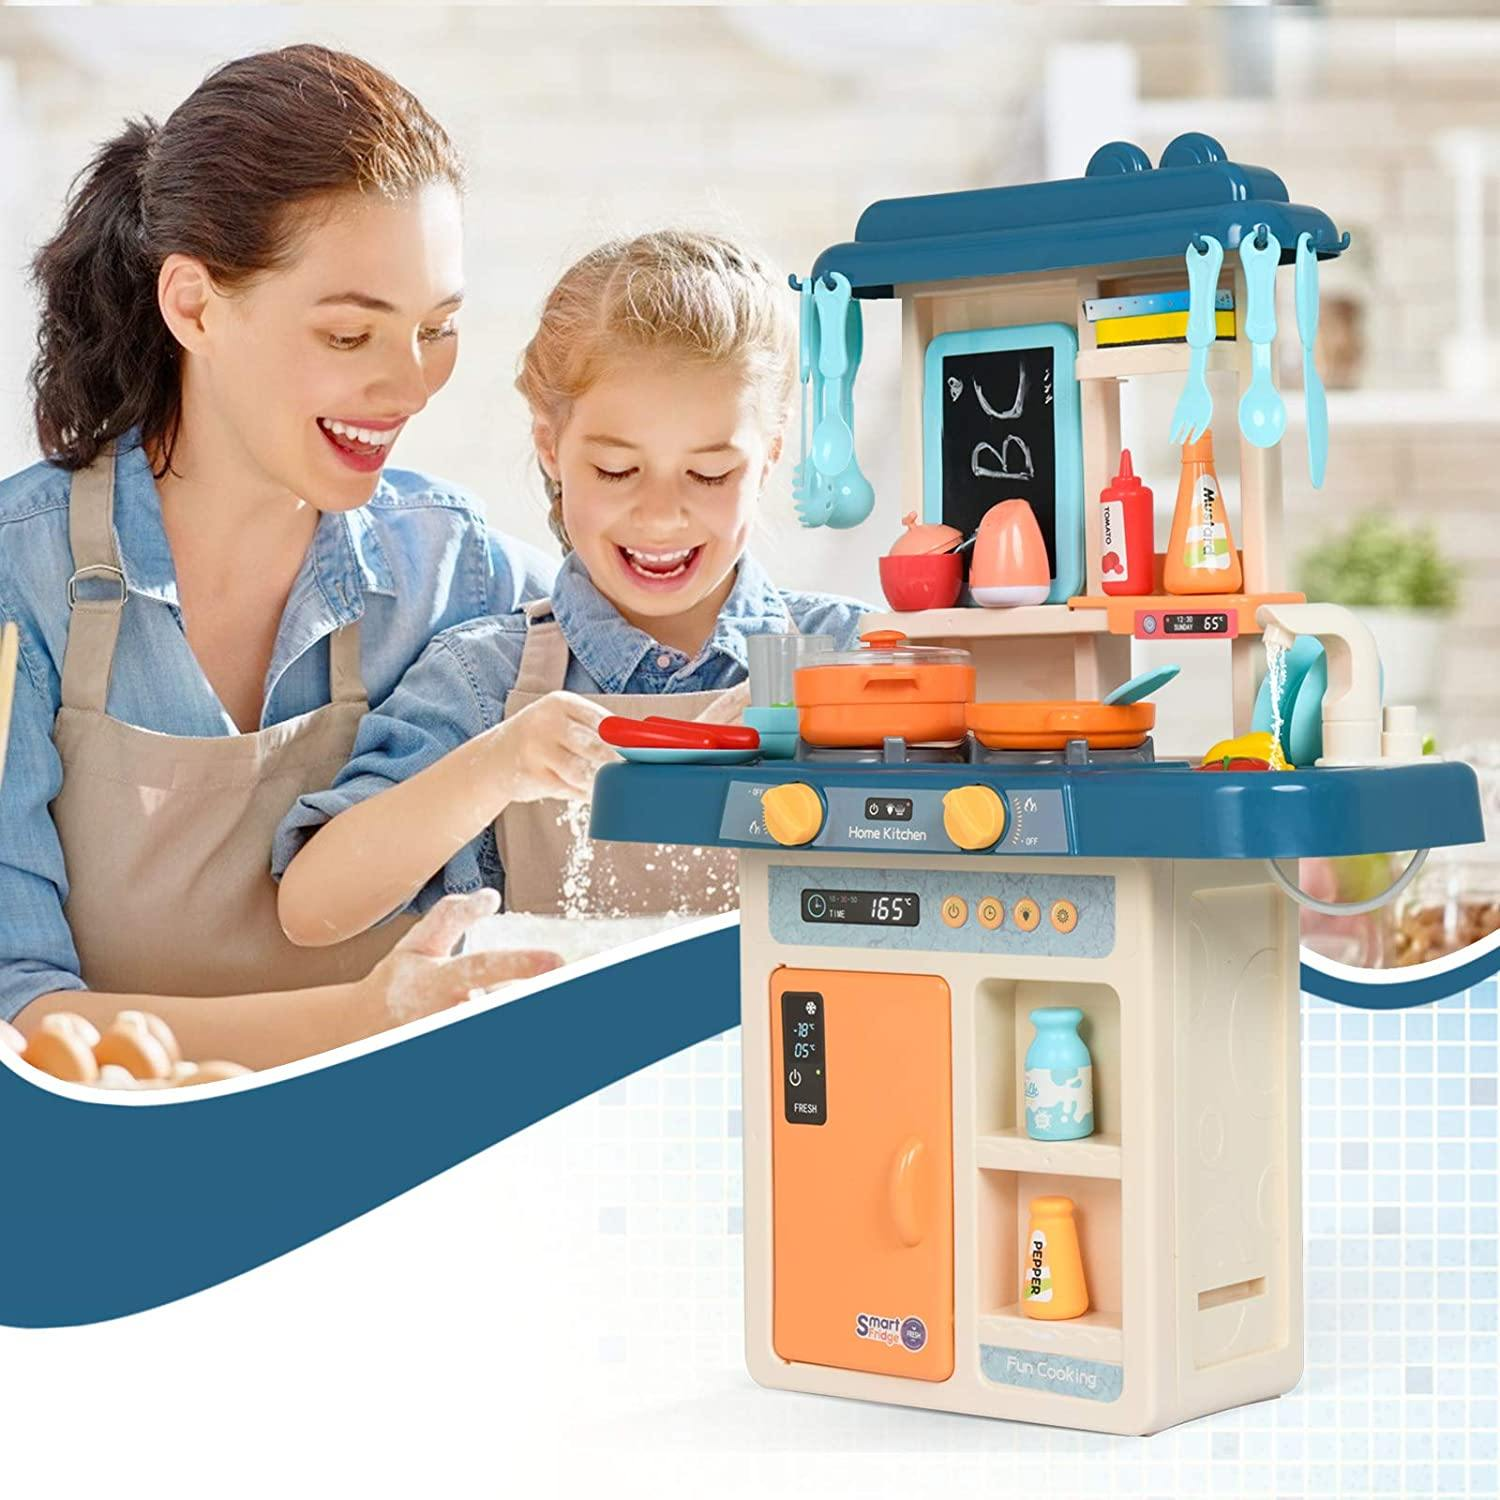 Uenjoy Kids Mini Kitchen Playset Plastic Pretend Play Kitchen with Realistic Lights & Sounds, Kitchen Sink with Real Water